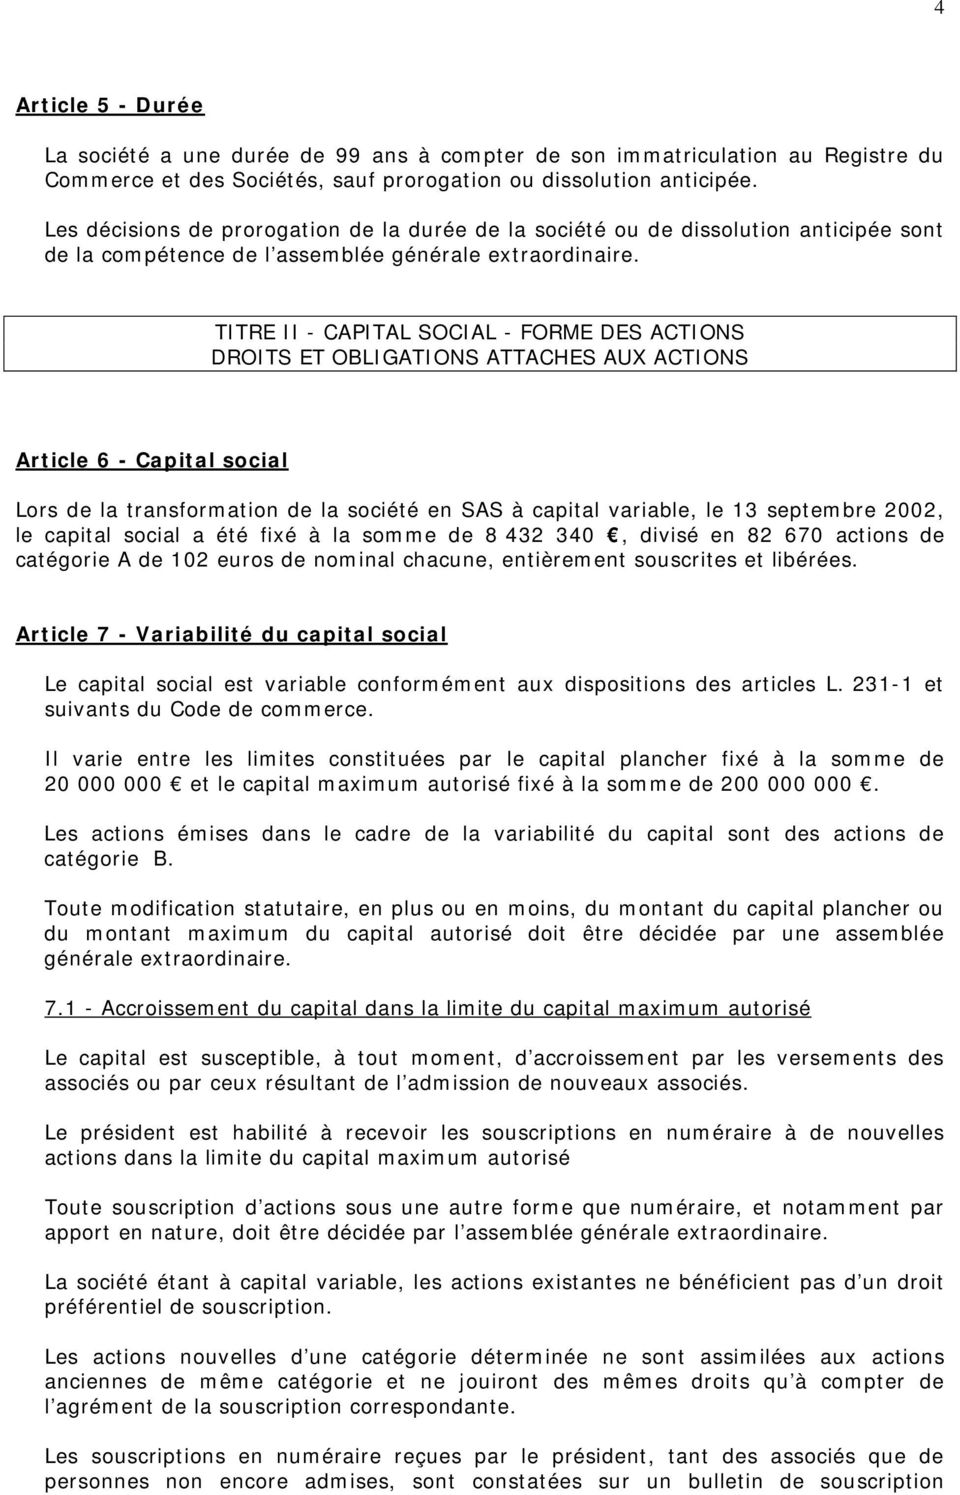 TITRE II - CAPITAL SOCIAL - FORME DES ACTIONS DROITS ET OBLIGATIONS ATTACHES AUX ACTIONS Article 6 - Capital social Lors de la transformation de la société en SAS à capital variable, le 13 septembre